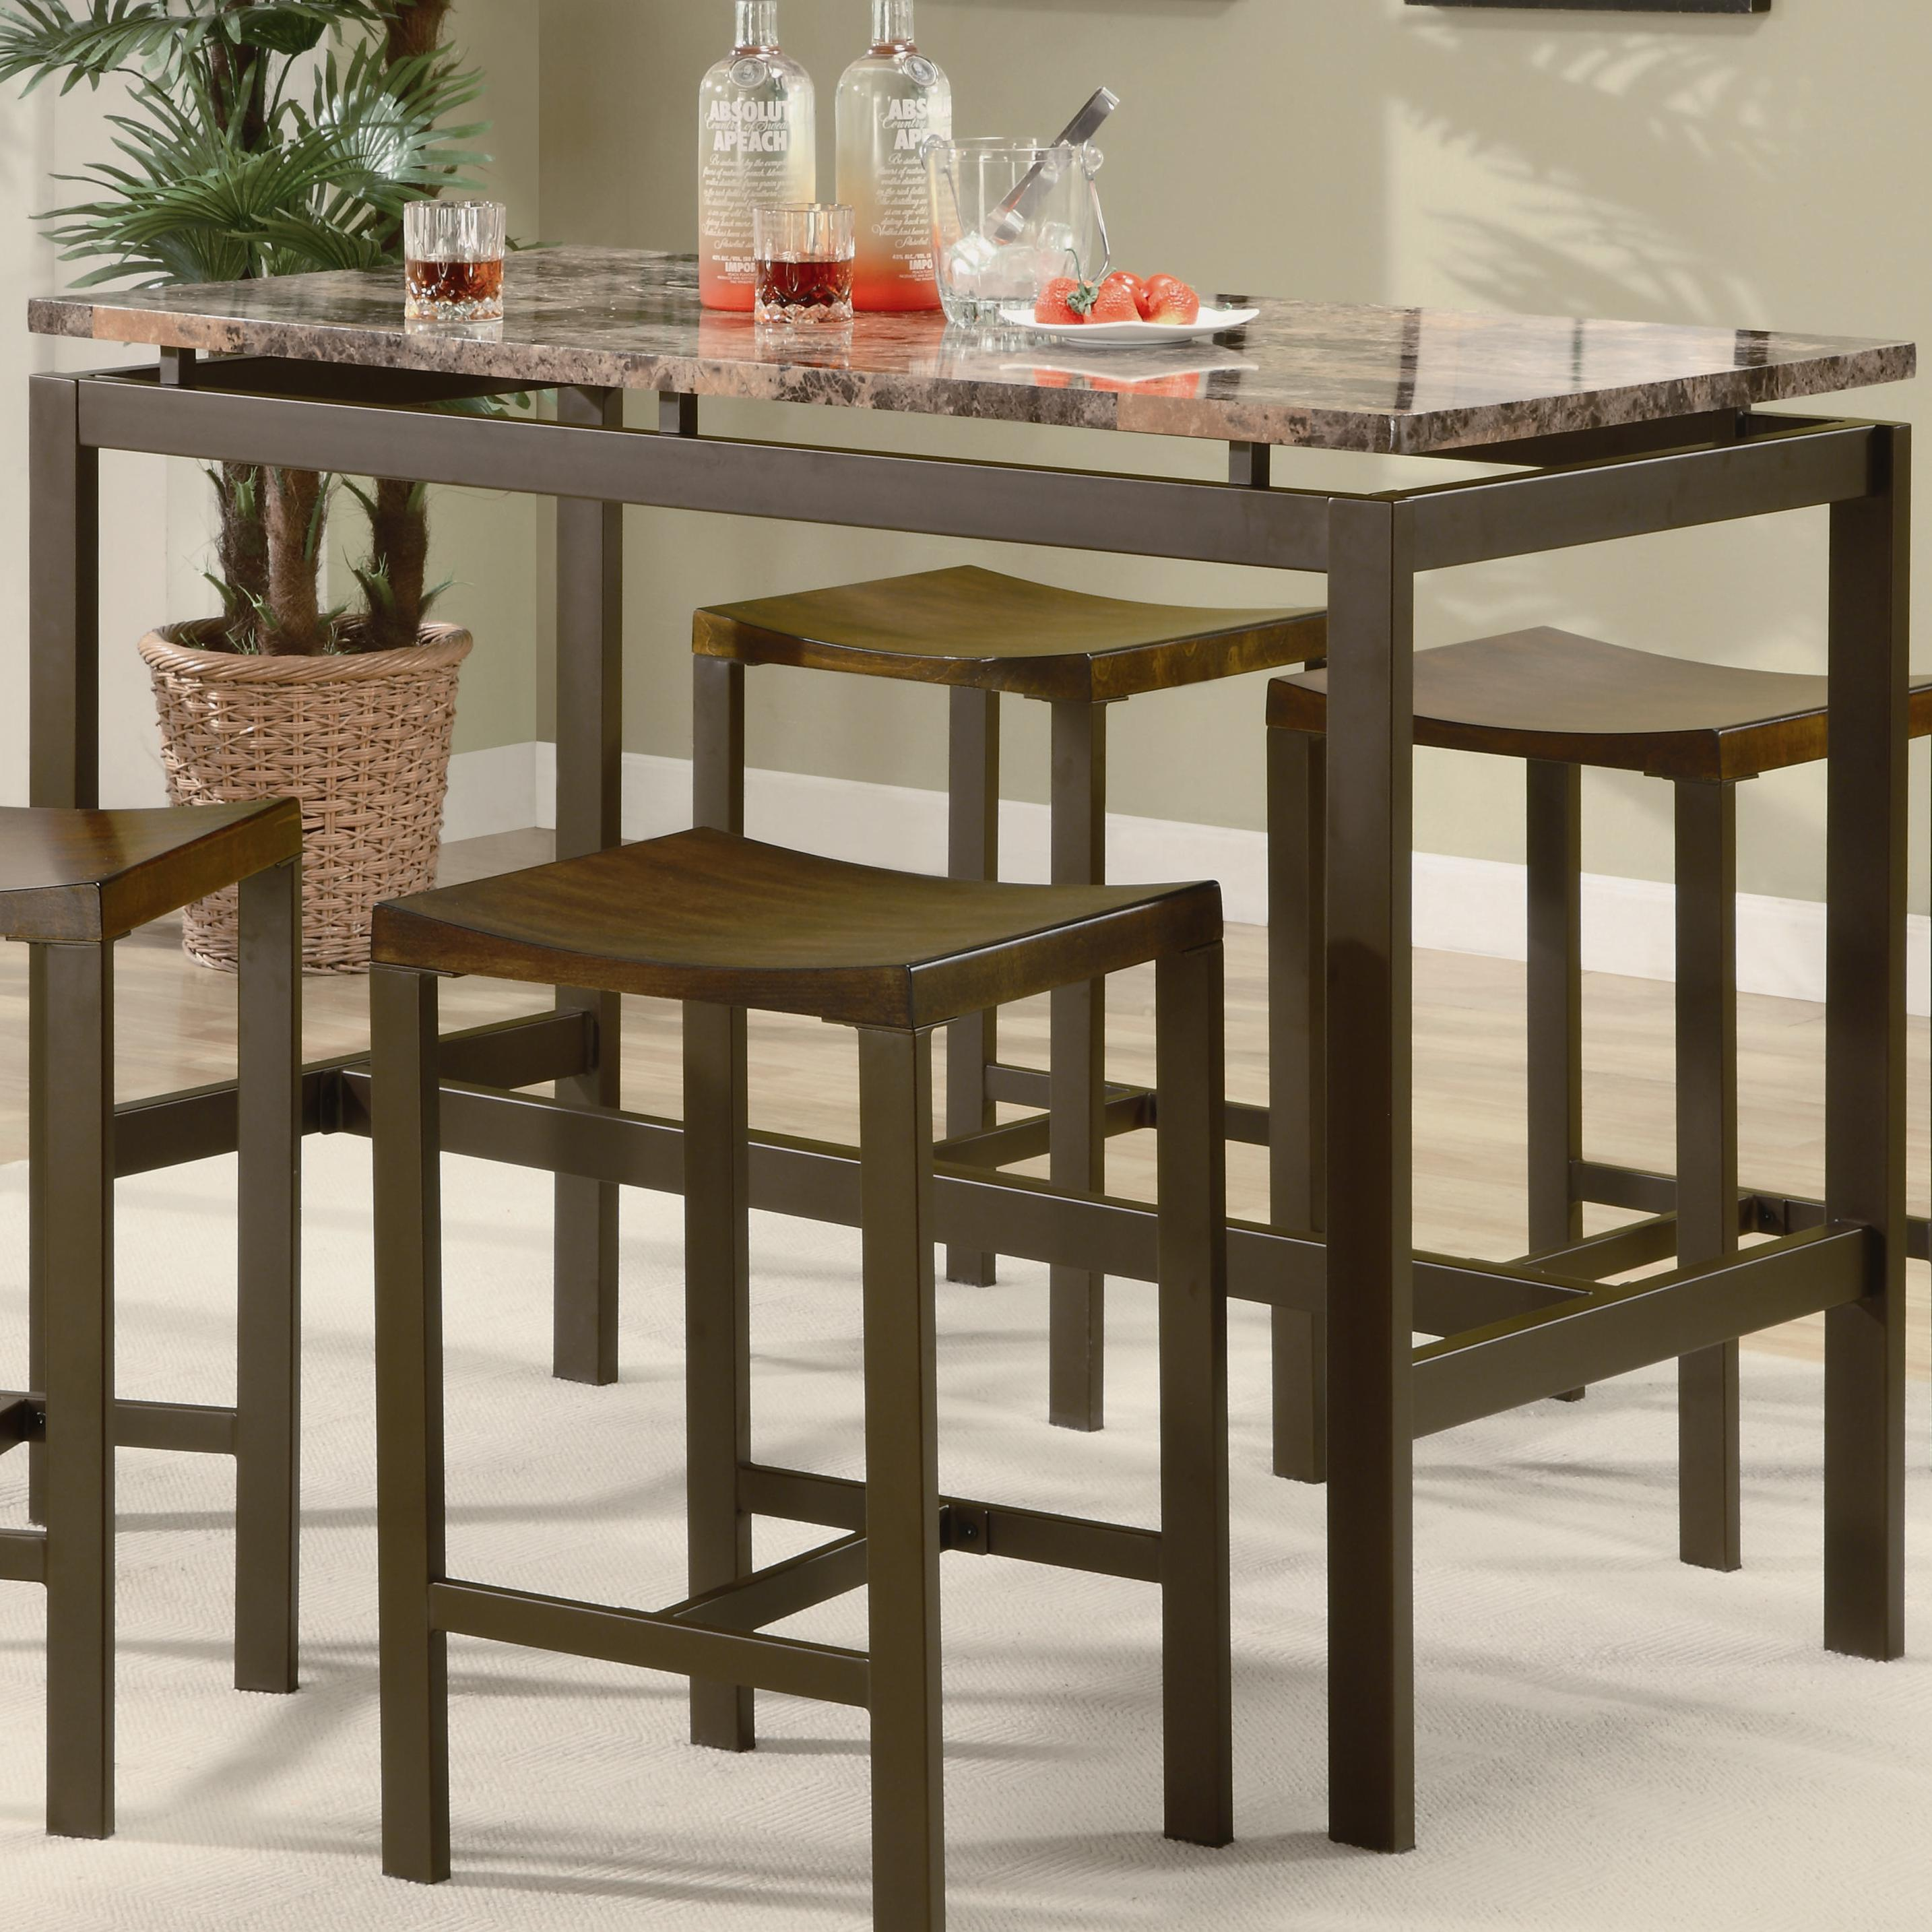 Coaster Atlus 5 Piece Counter Height Dining Set - Item Number: 150096